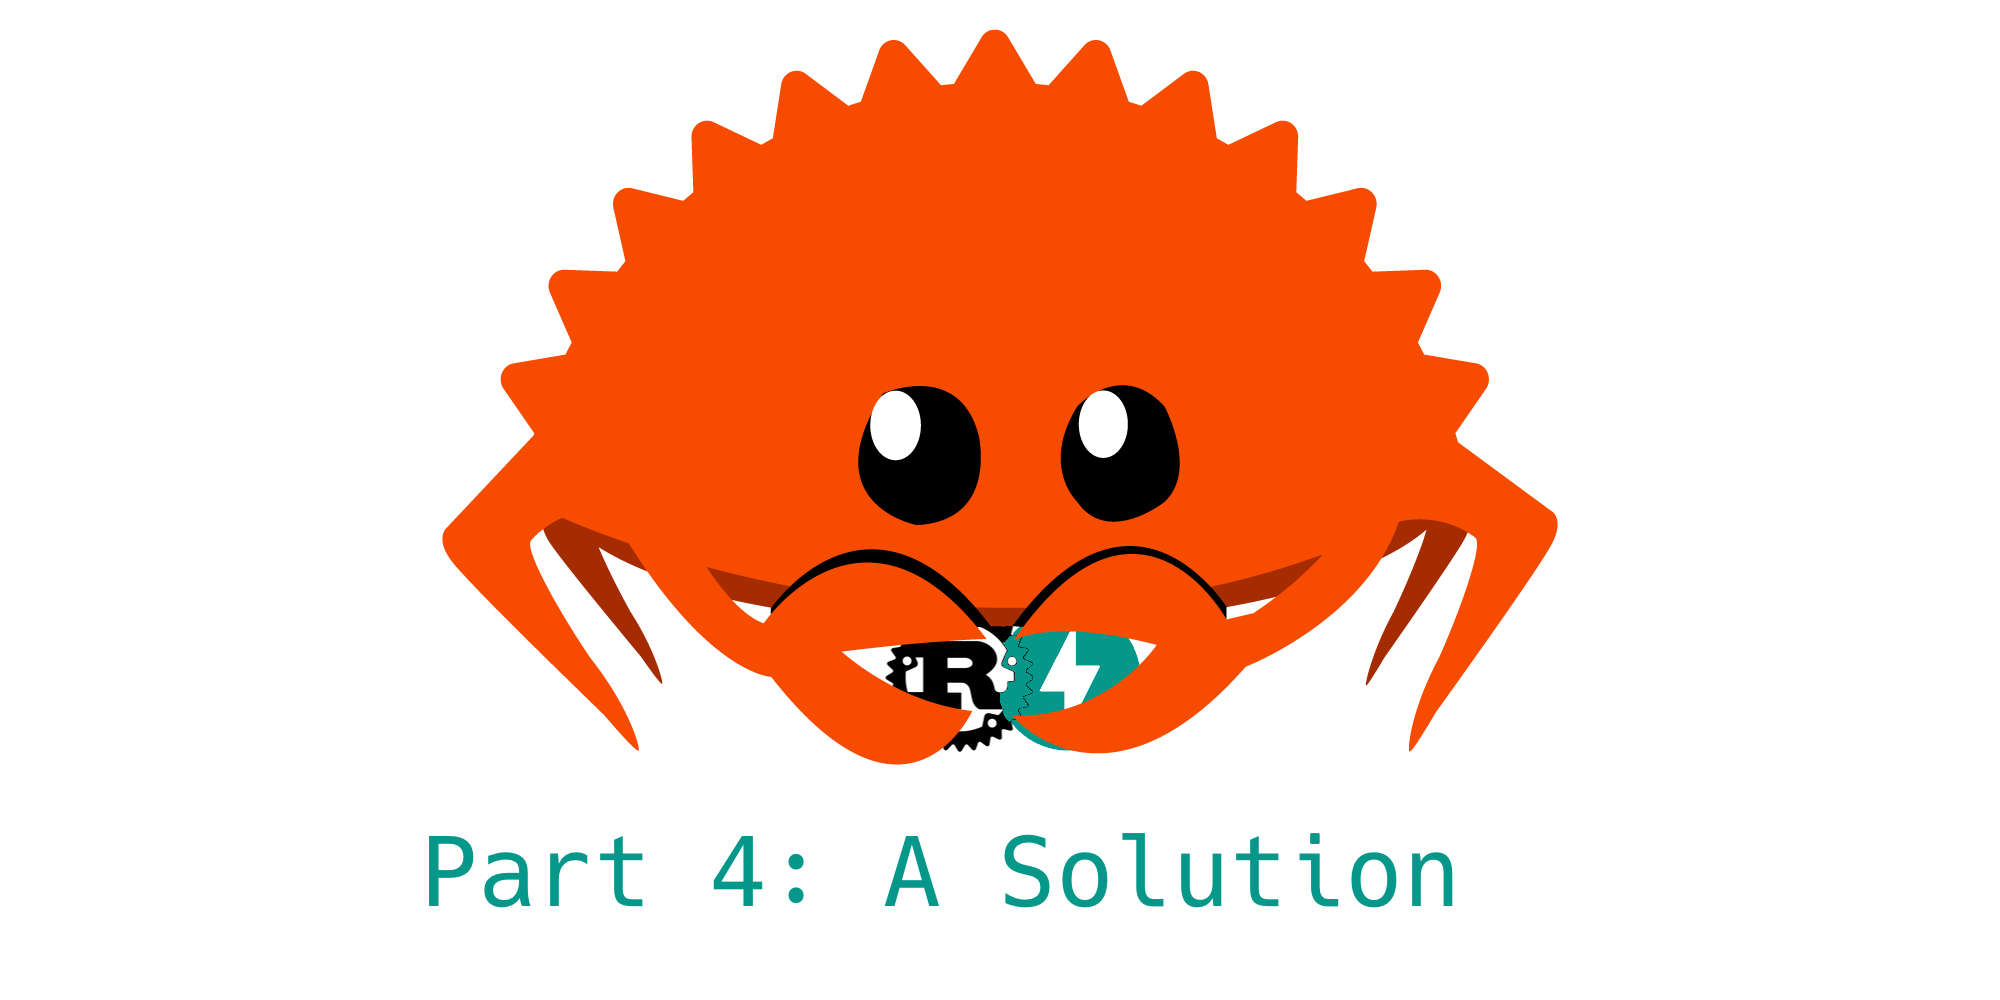 The Rust mascot 'Ferris the Crab' holds the logos for FastAPI and Rust and is smooshing them together.